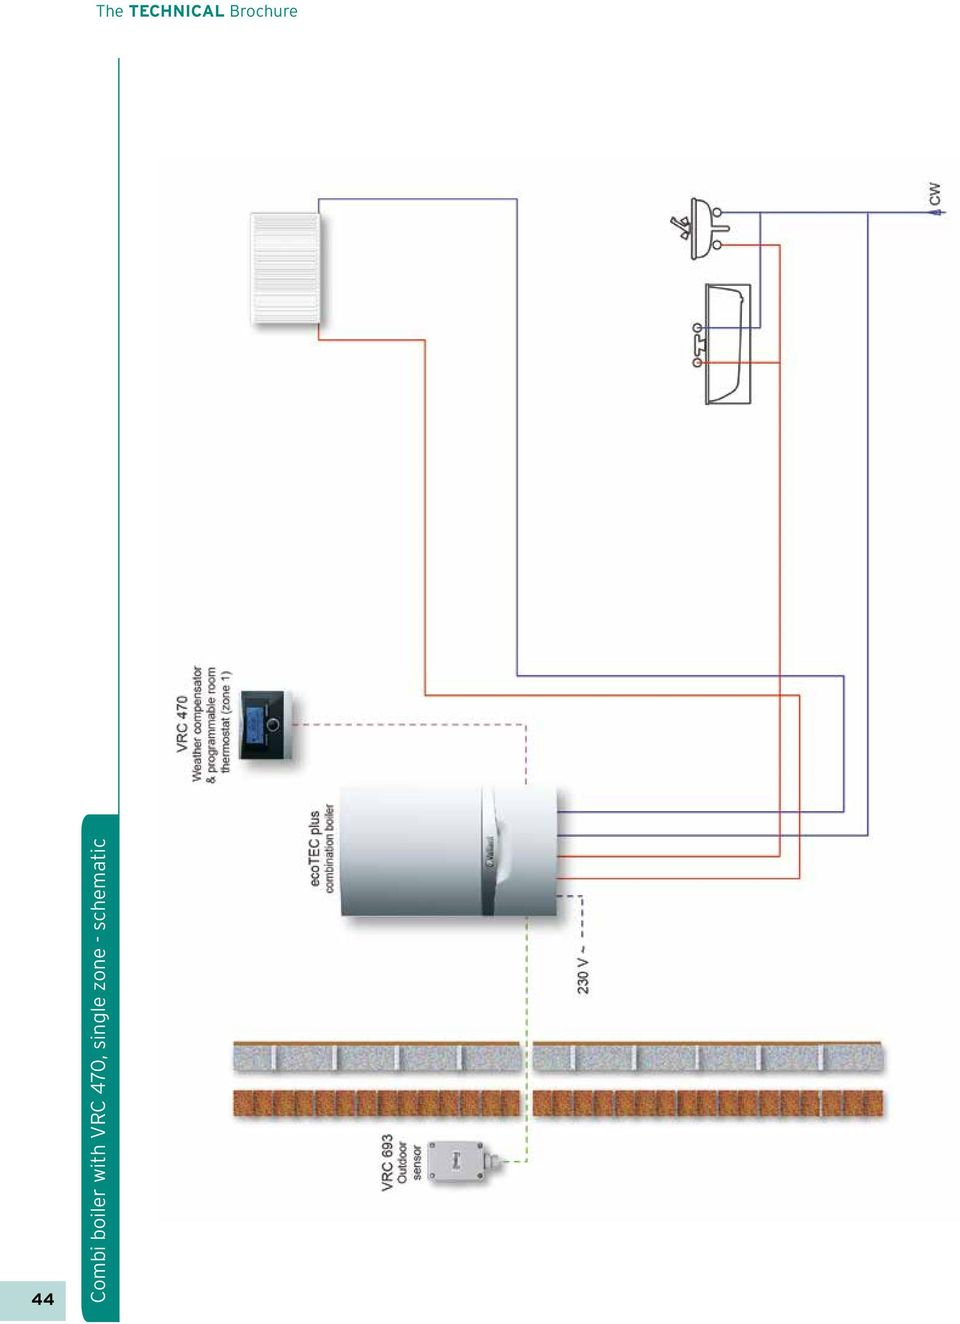 vaillant ecotec plus 438 wiring diagram vw golf alternator why because the delivers day in out boiler with vrc